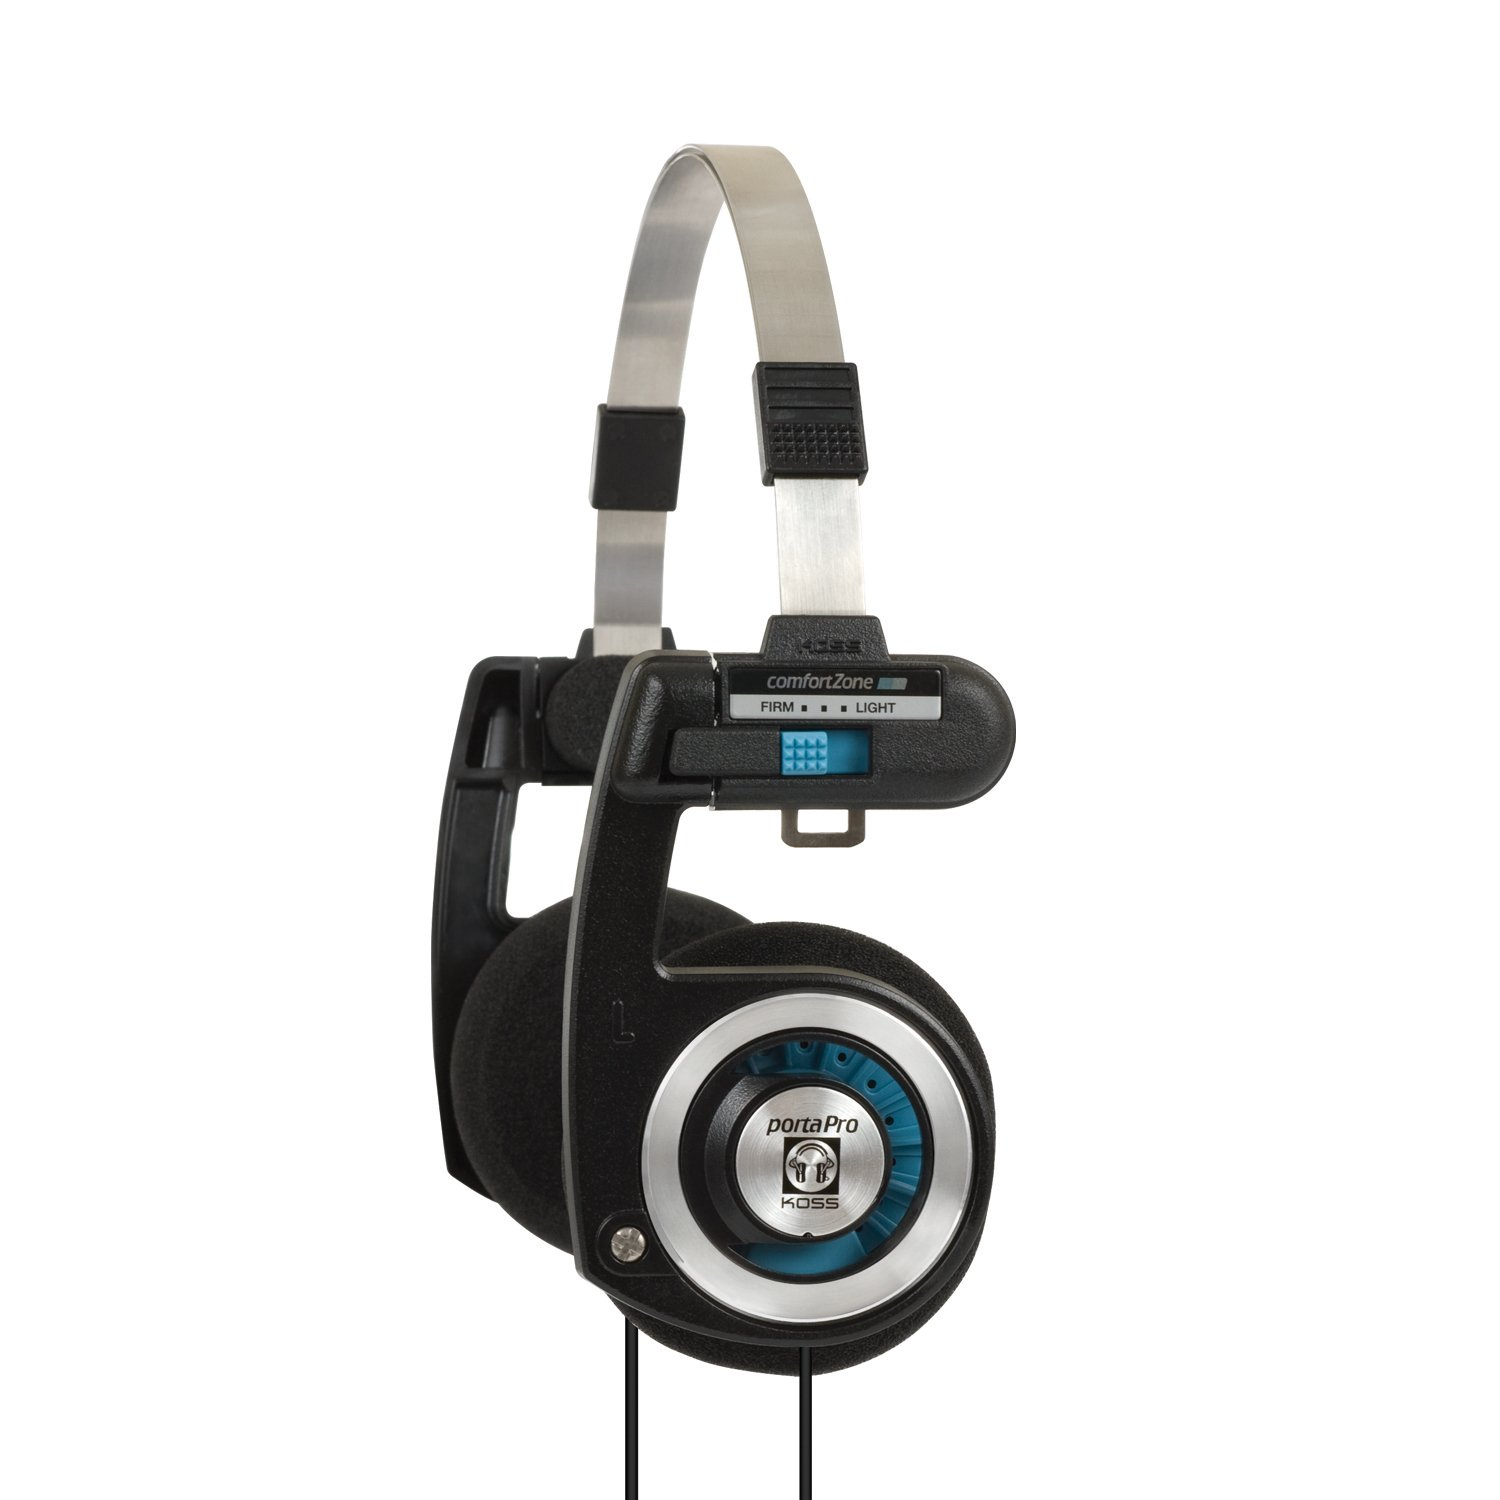 Koss Porta Pro On Ear Headphones with Case, Black / Silver by Koss